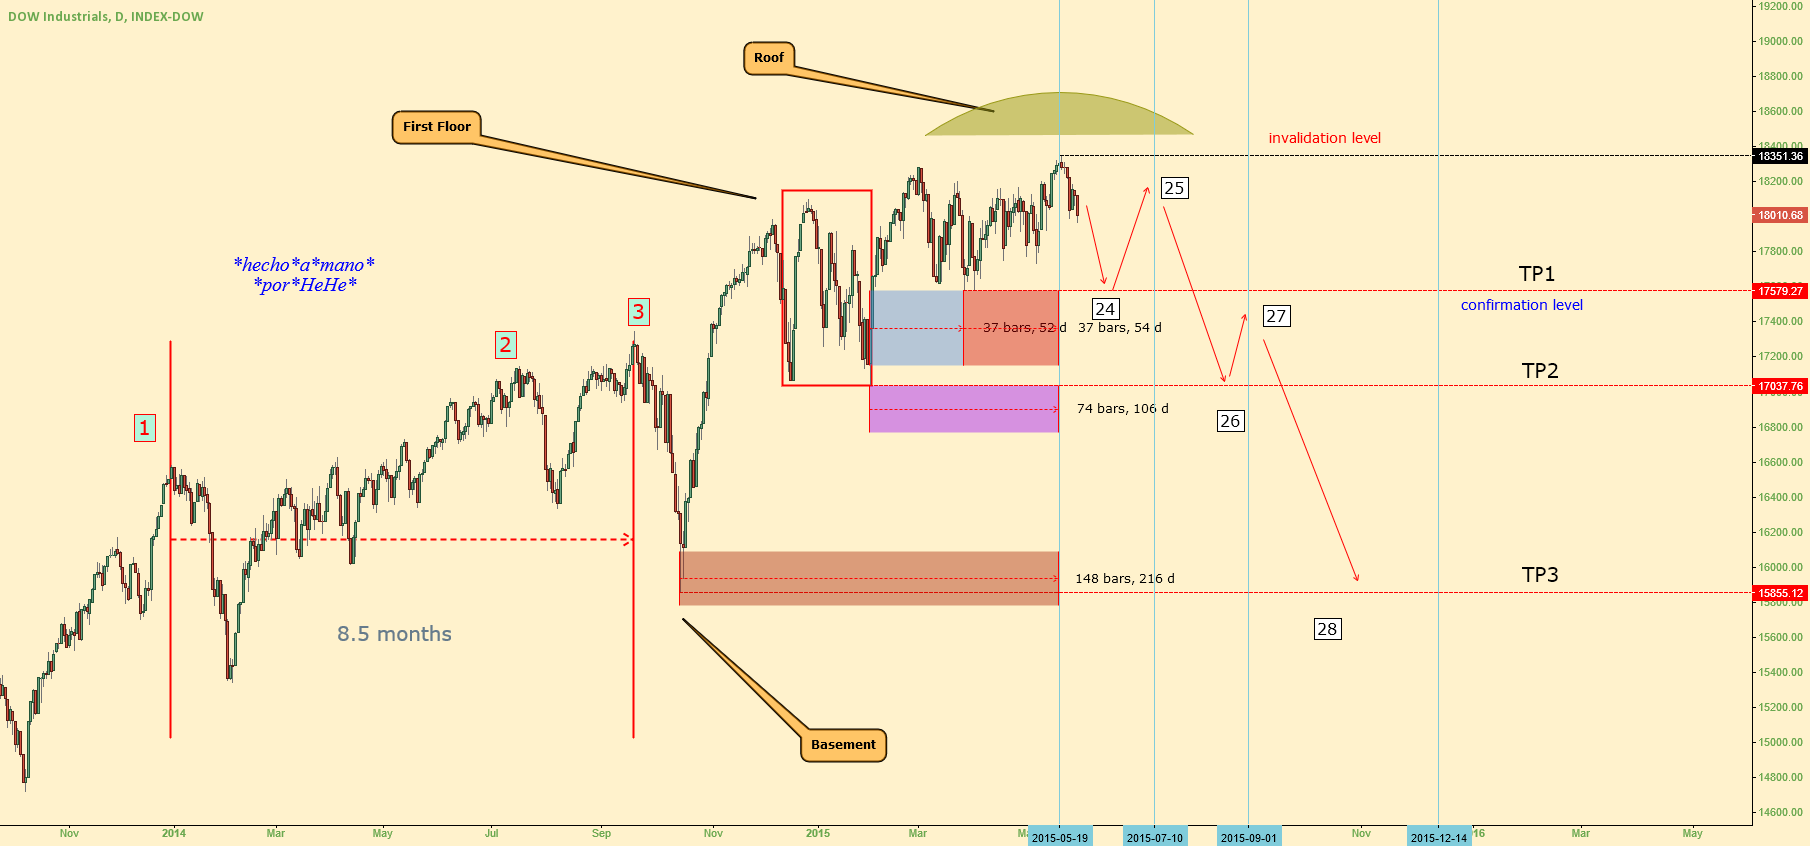 $DJIA - Enough is Enough. Unearthly Domed House Part II.